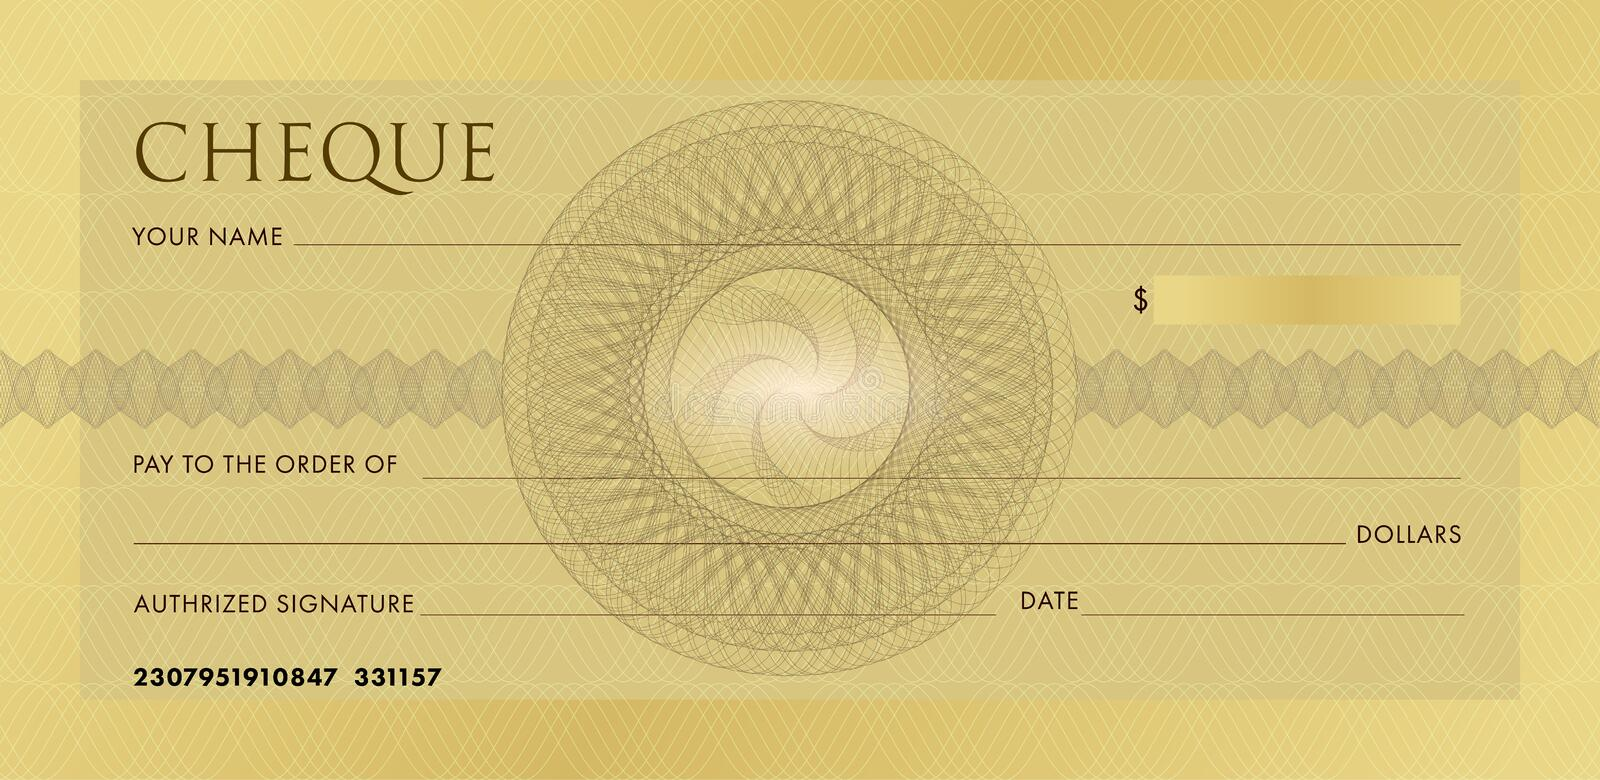 Check template, Chequebook template. Blank gold business bank cheque with guilloche pattern rosette and abstract royalty free illustration